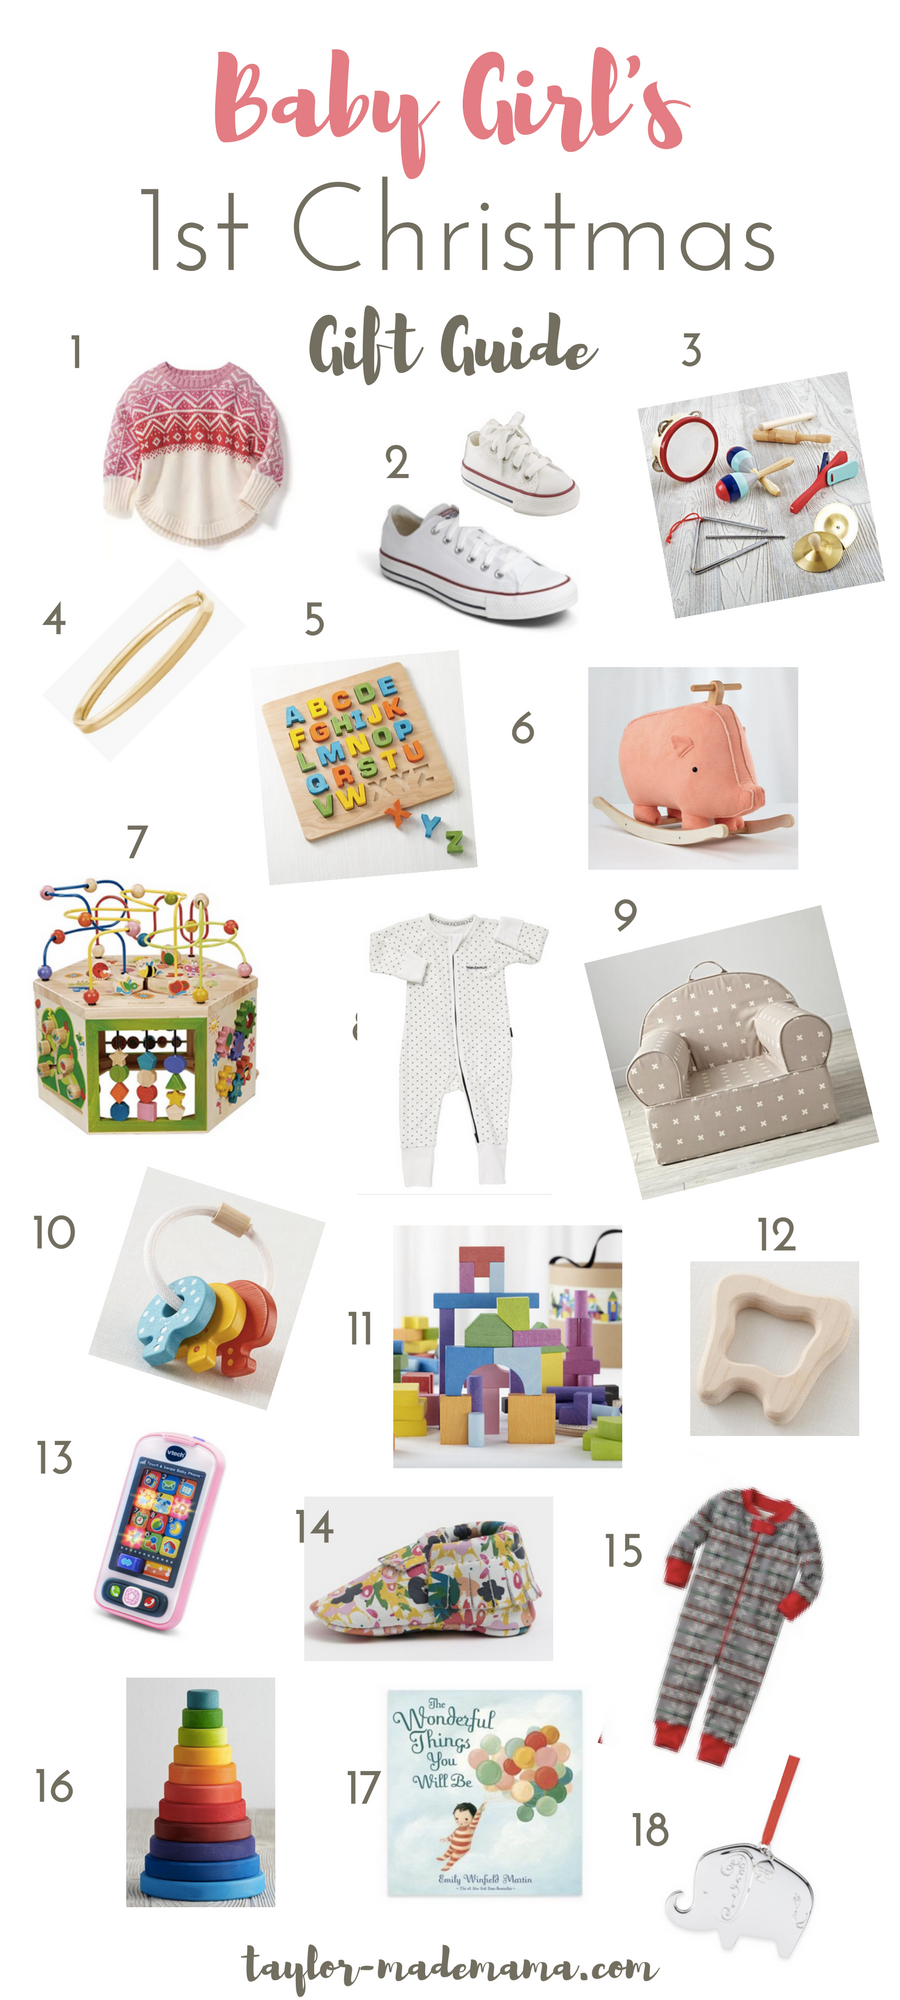 The Perfect First Christmas Gift Guide For A Baby Girl | Mommy ideas ...